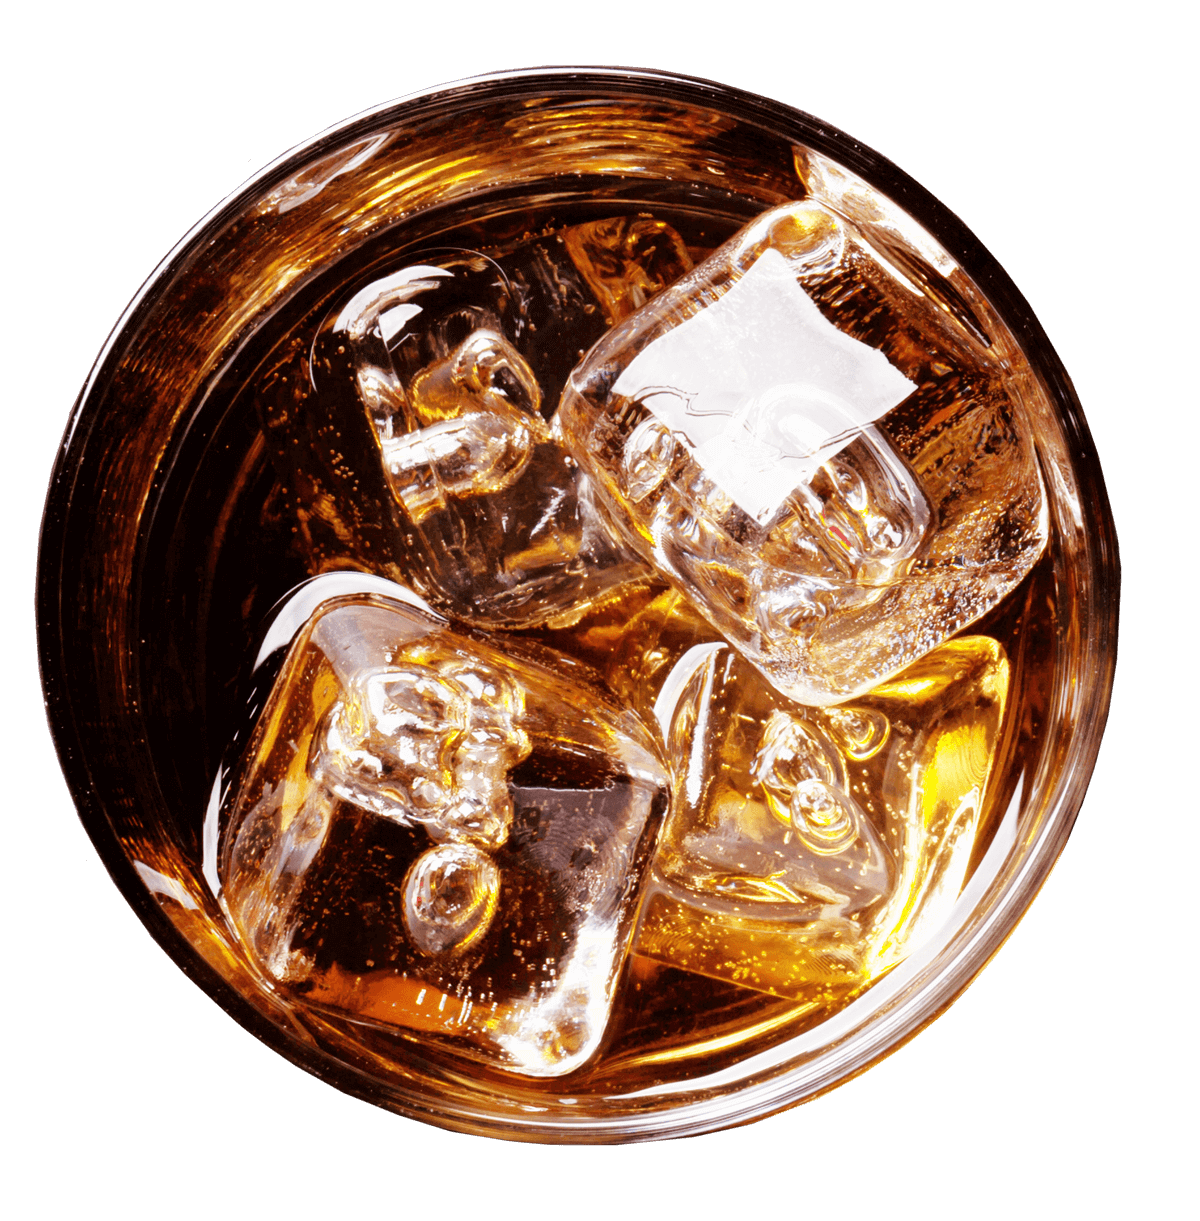 https://www.rum-malecon.de/wp-content/uploads/2018/11/whiskey-with-ice-PFMVWCT.png